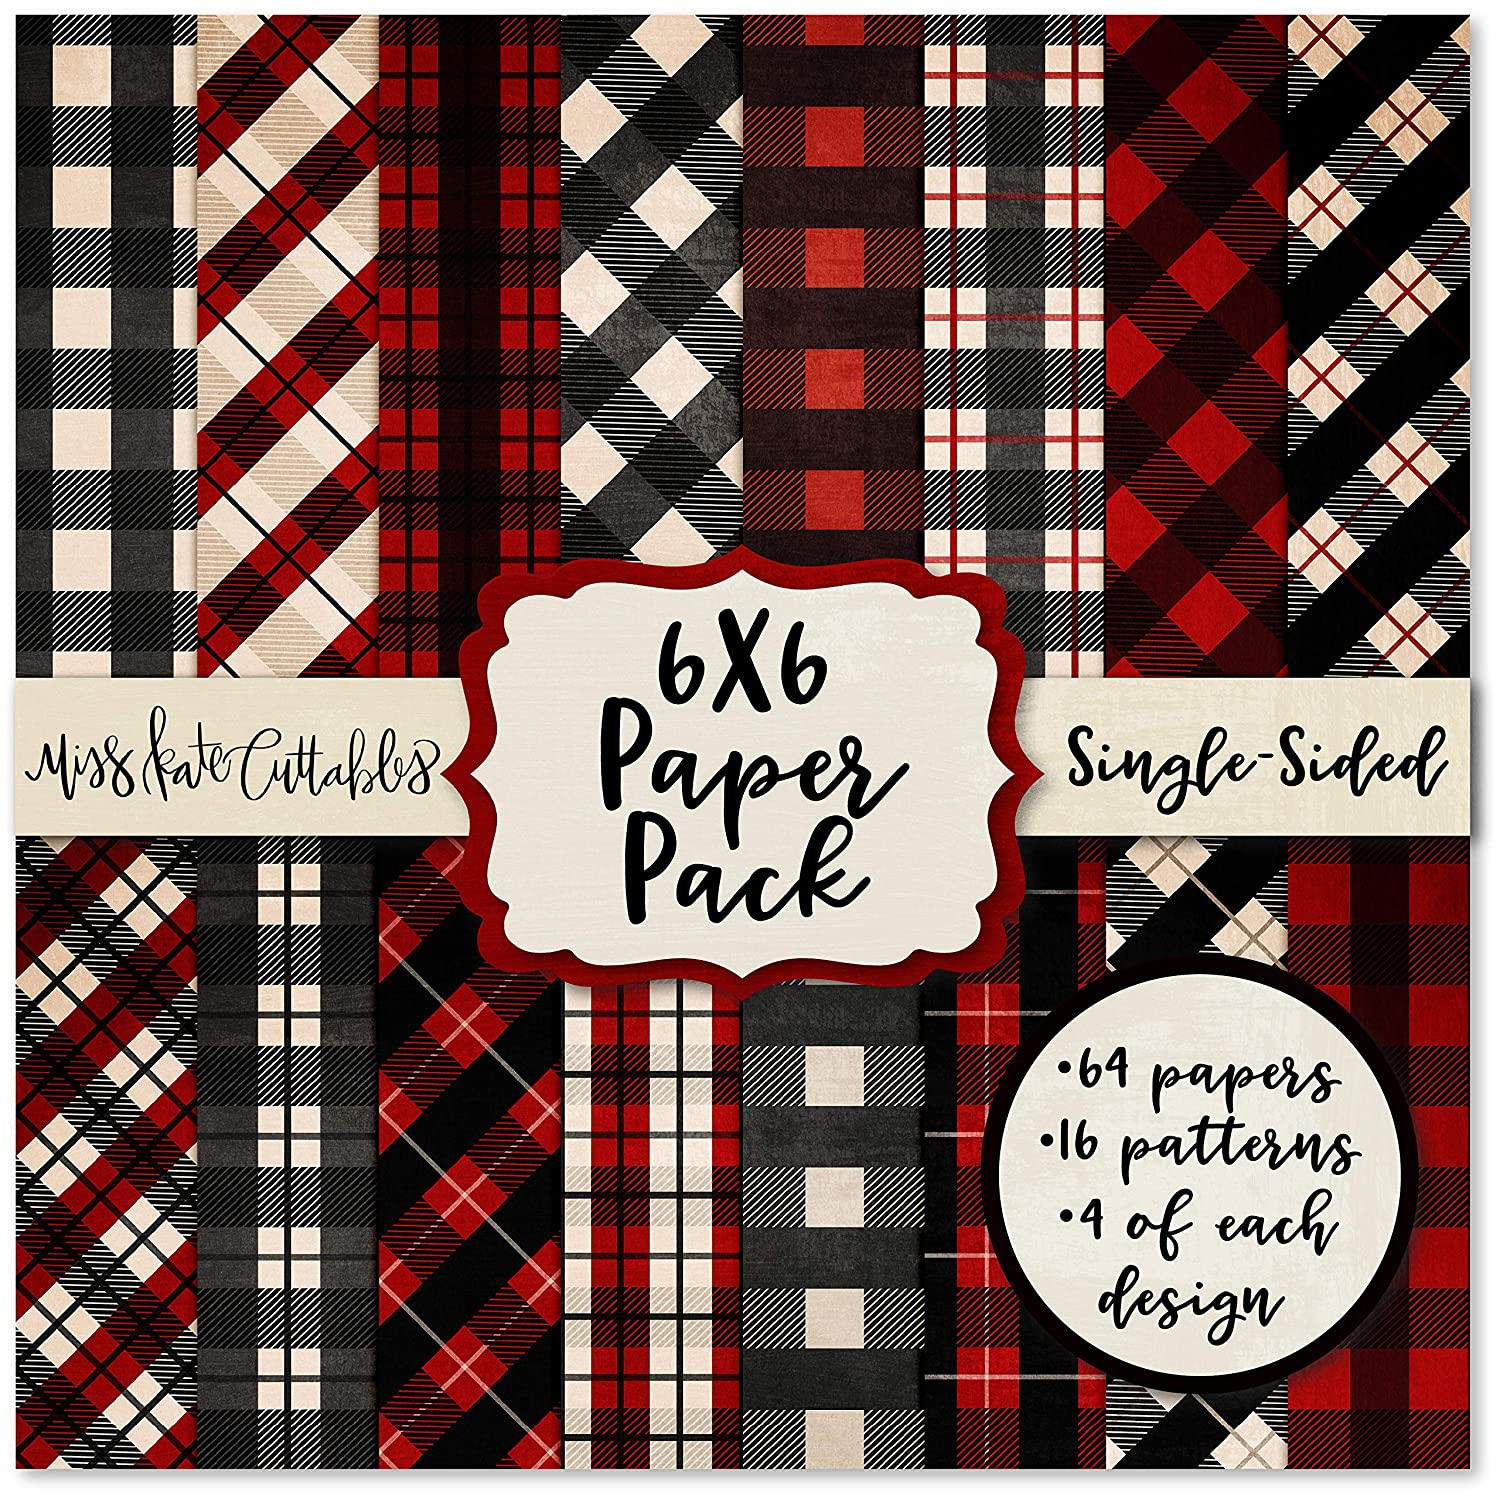 6X6 Pattern Paper Pack - Red & Black Buffalo Check - Card Making Scrapbook Specialty Paper Single-Sided 6'x6' Collection Includes 64 Sheets - by Miss Kate Cuttables